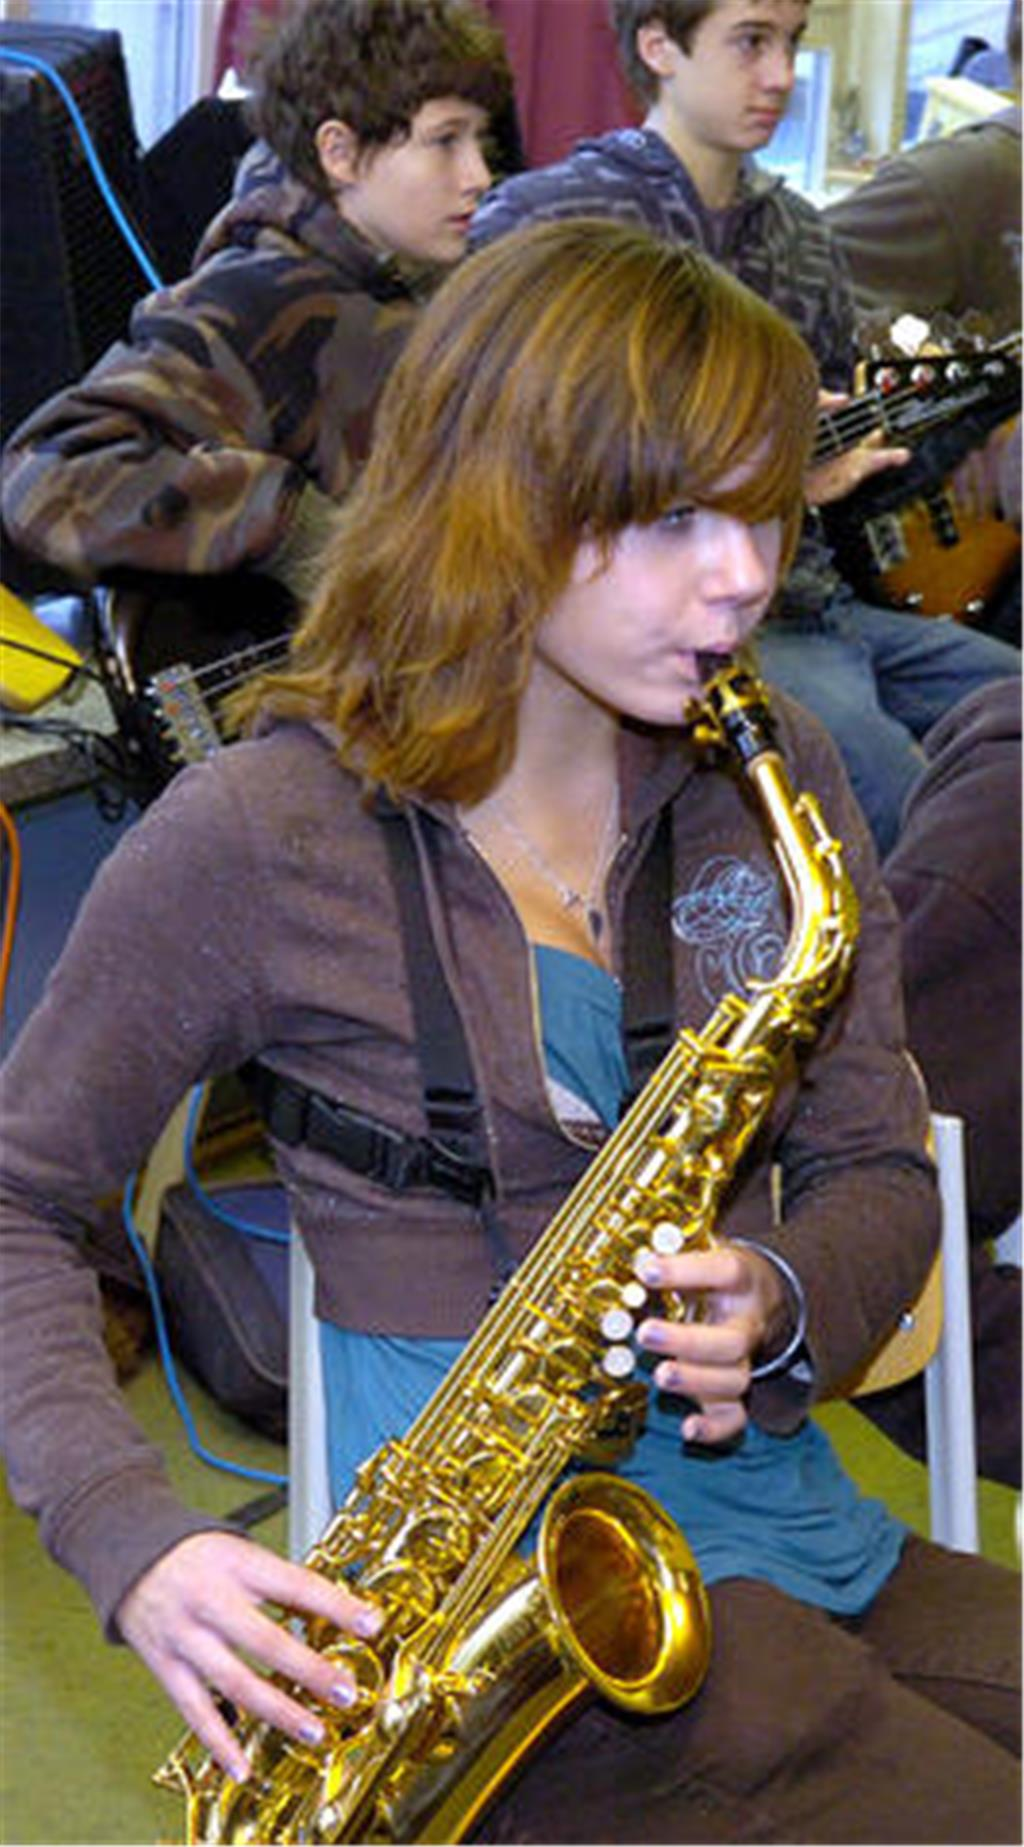 Crashkurs in Sachen Big Band